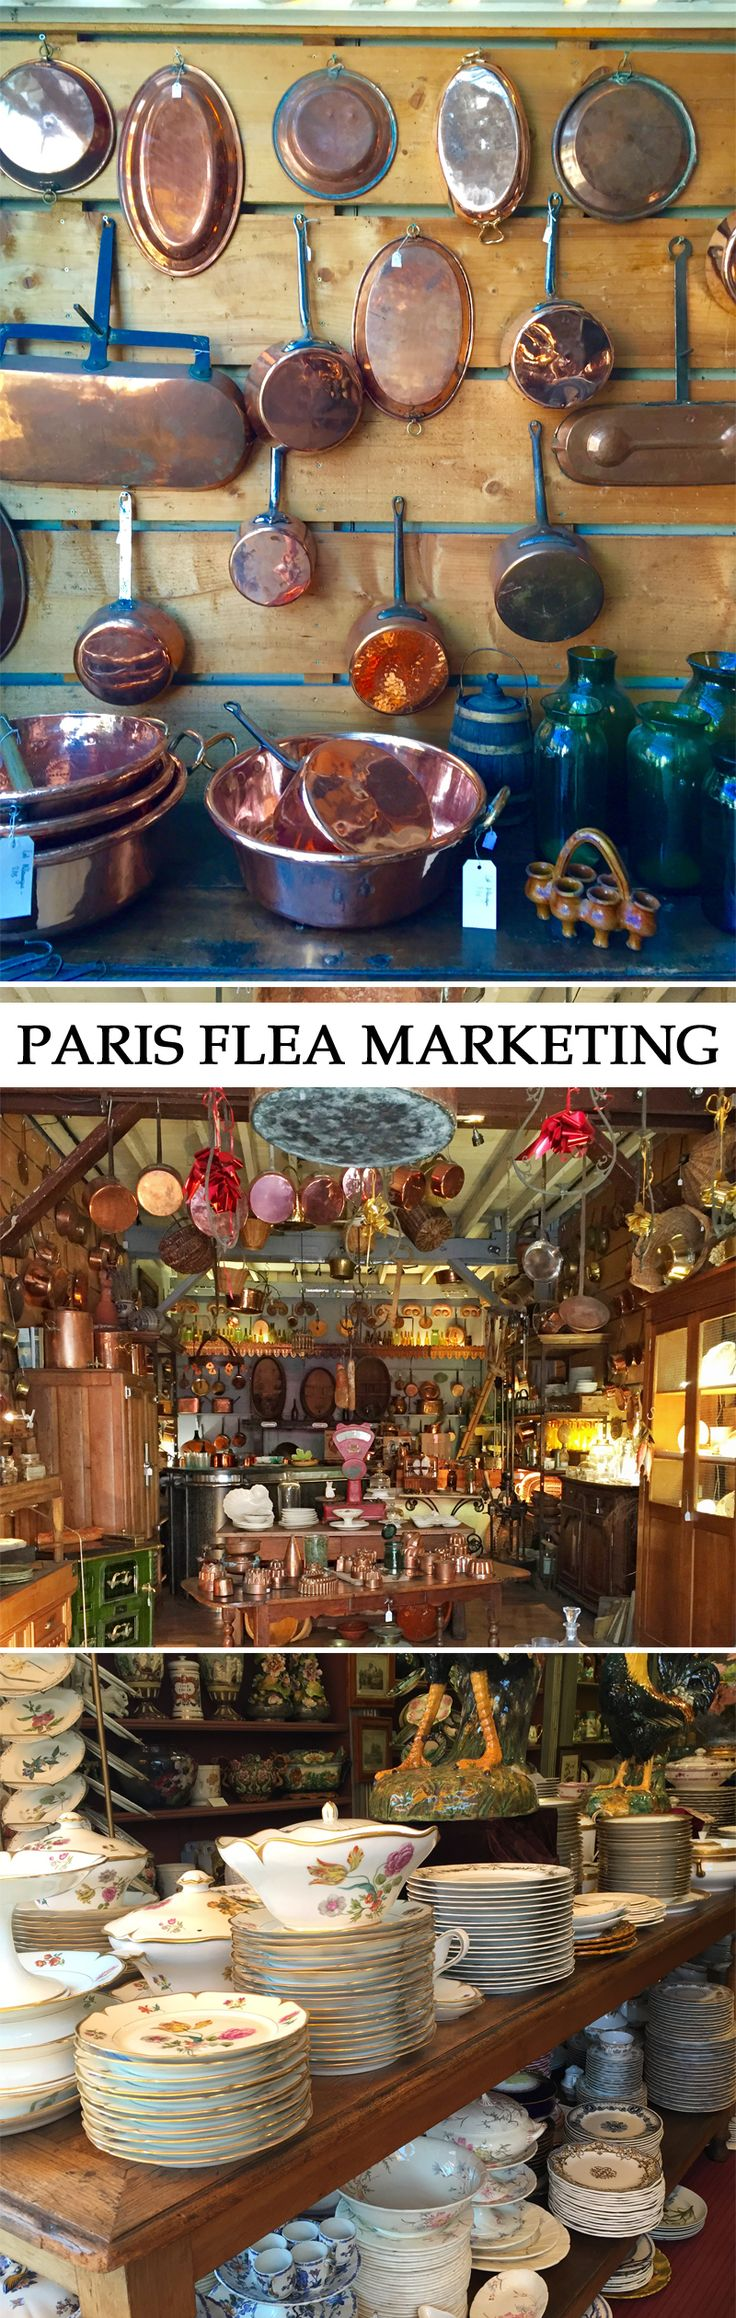 Shopping the Paris Flea Market